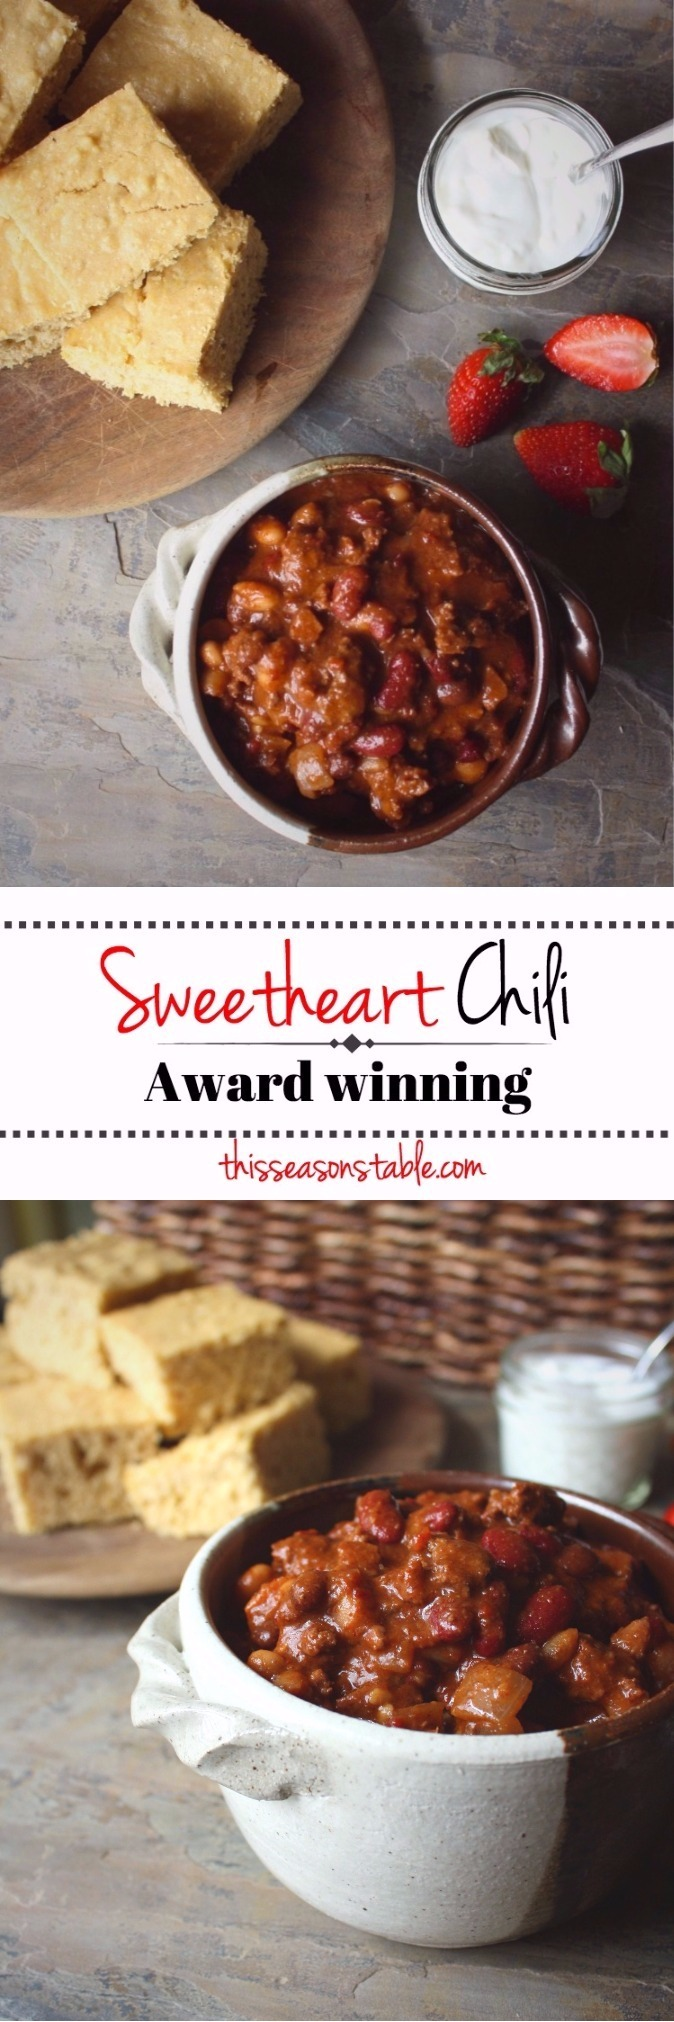 An award-winning sweet chili with a secret ingredient - strawberries!! It makes a large batch to get you through a nice cold weekend!